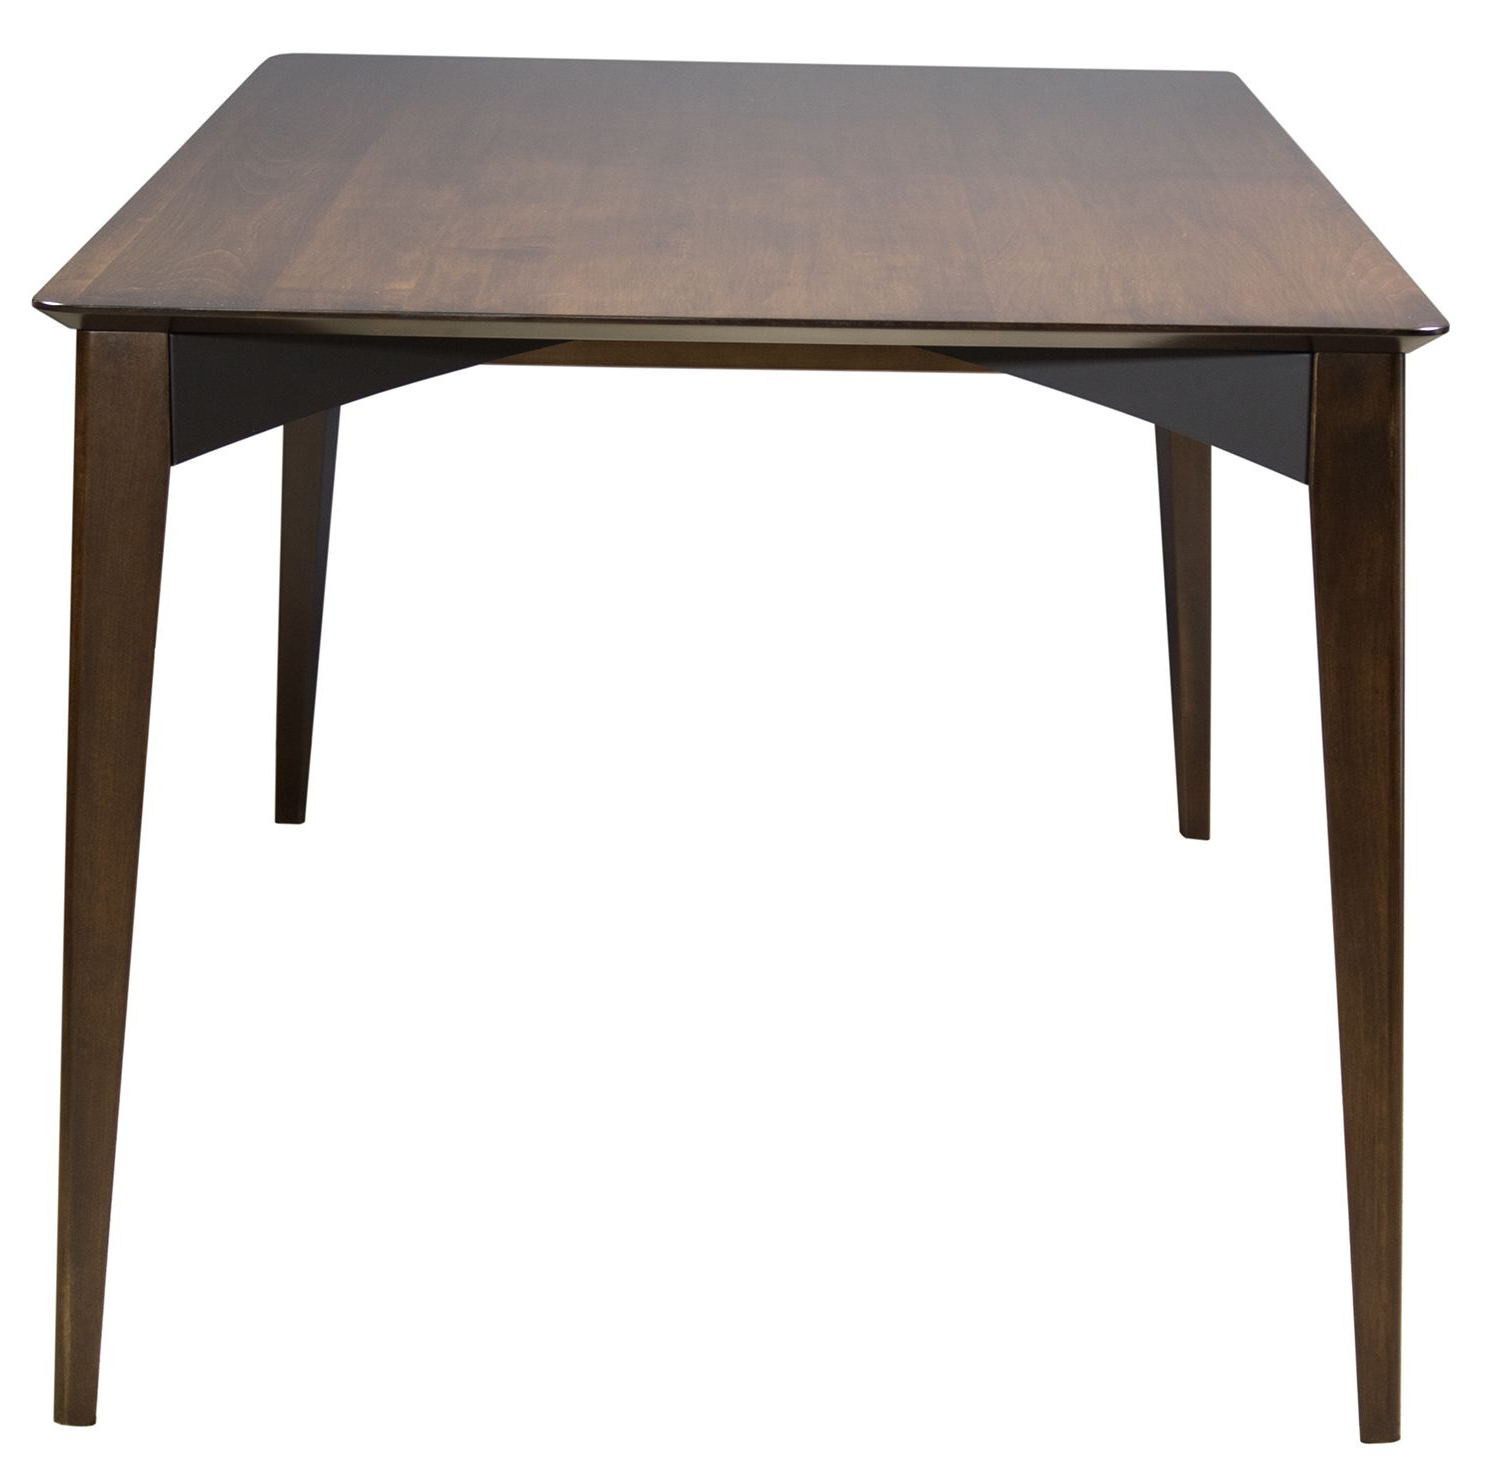 Remi Dining Table In Amaretto Finish From Saloom (View 13 of 20)